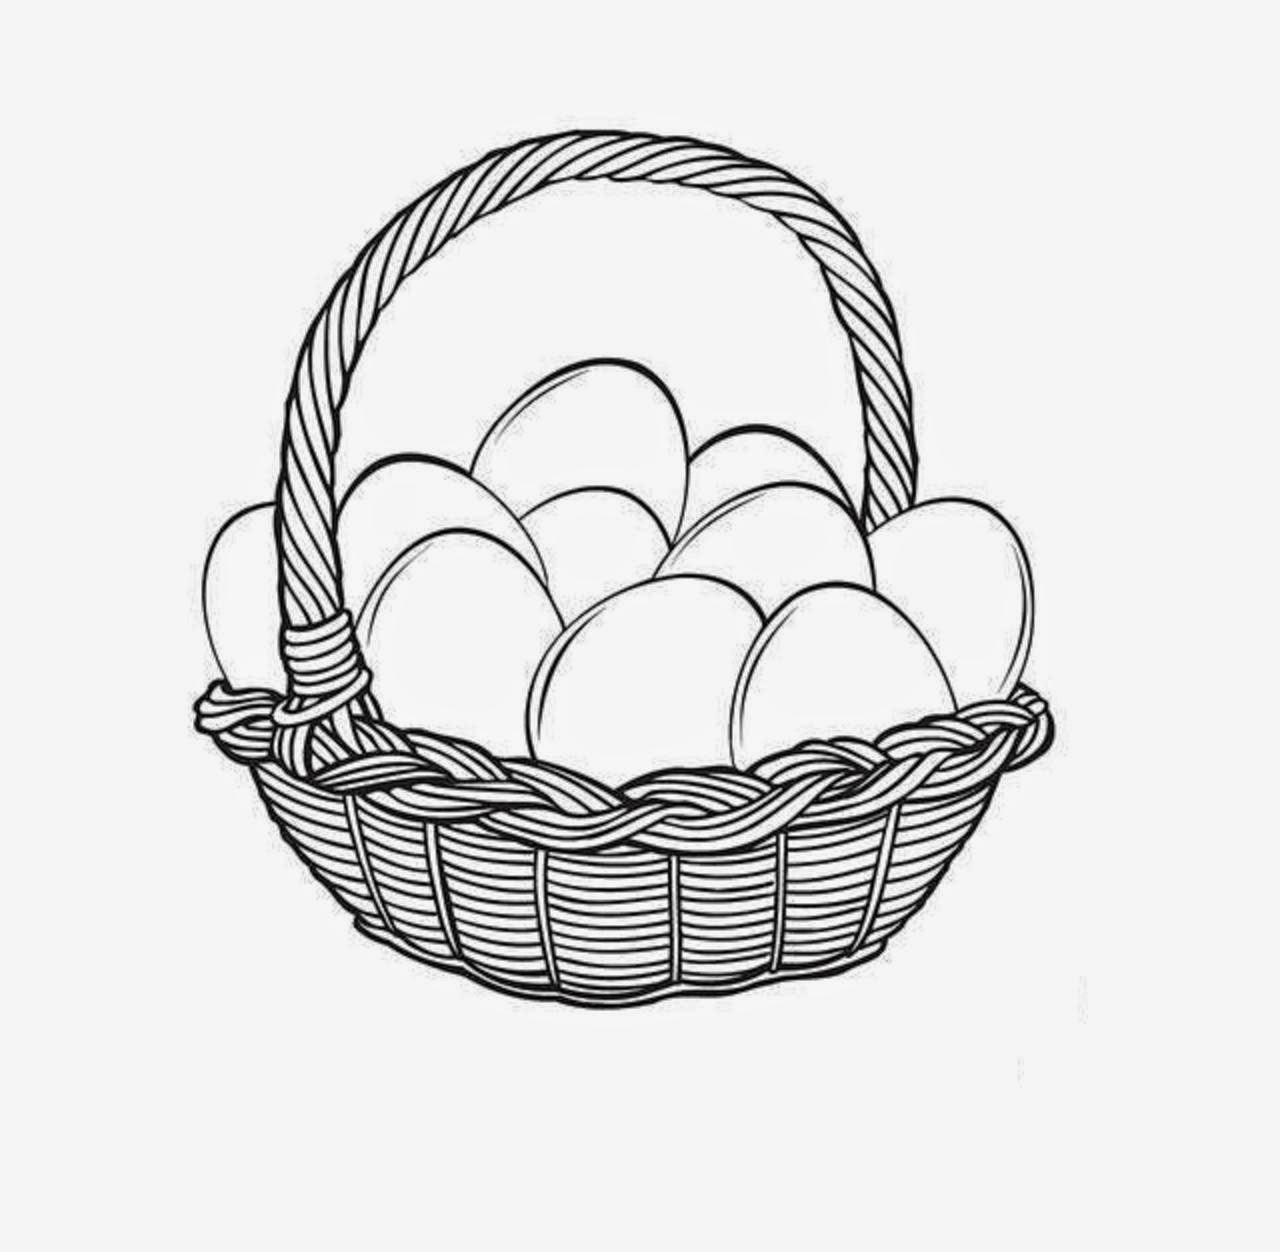 Easter Basket Coloring Drawing Free wallpaper